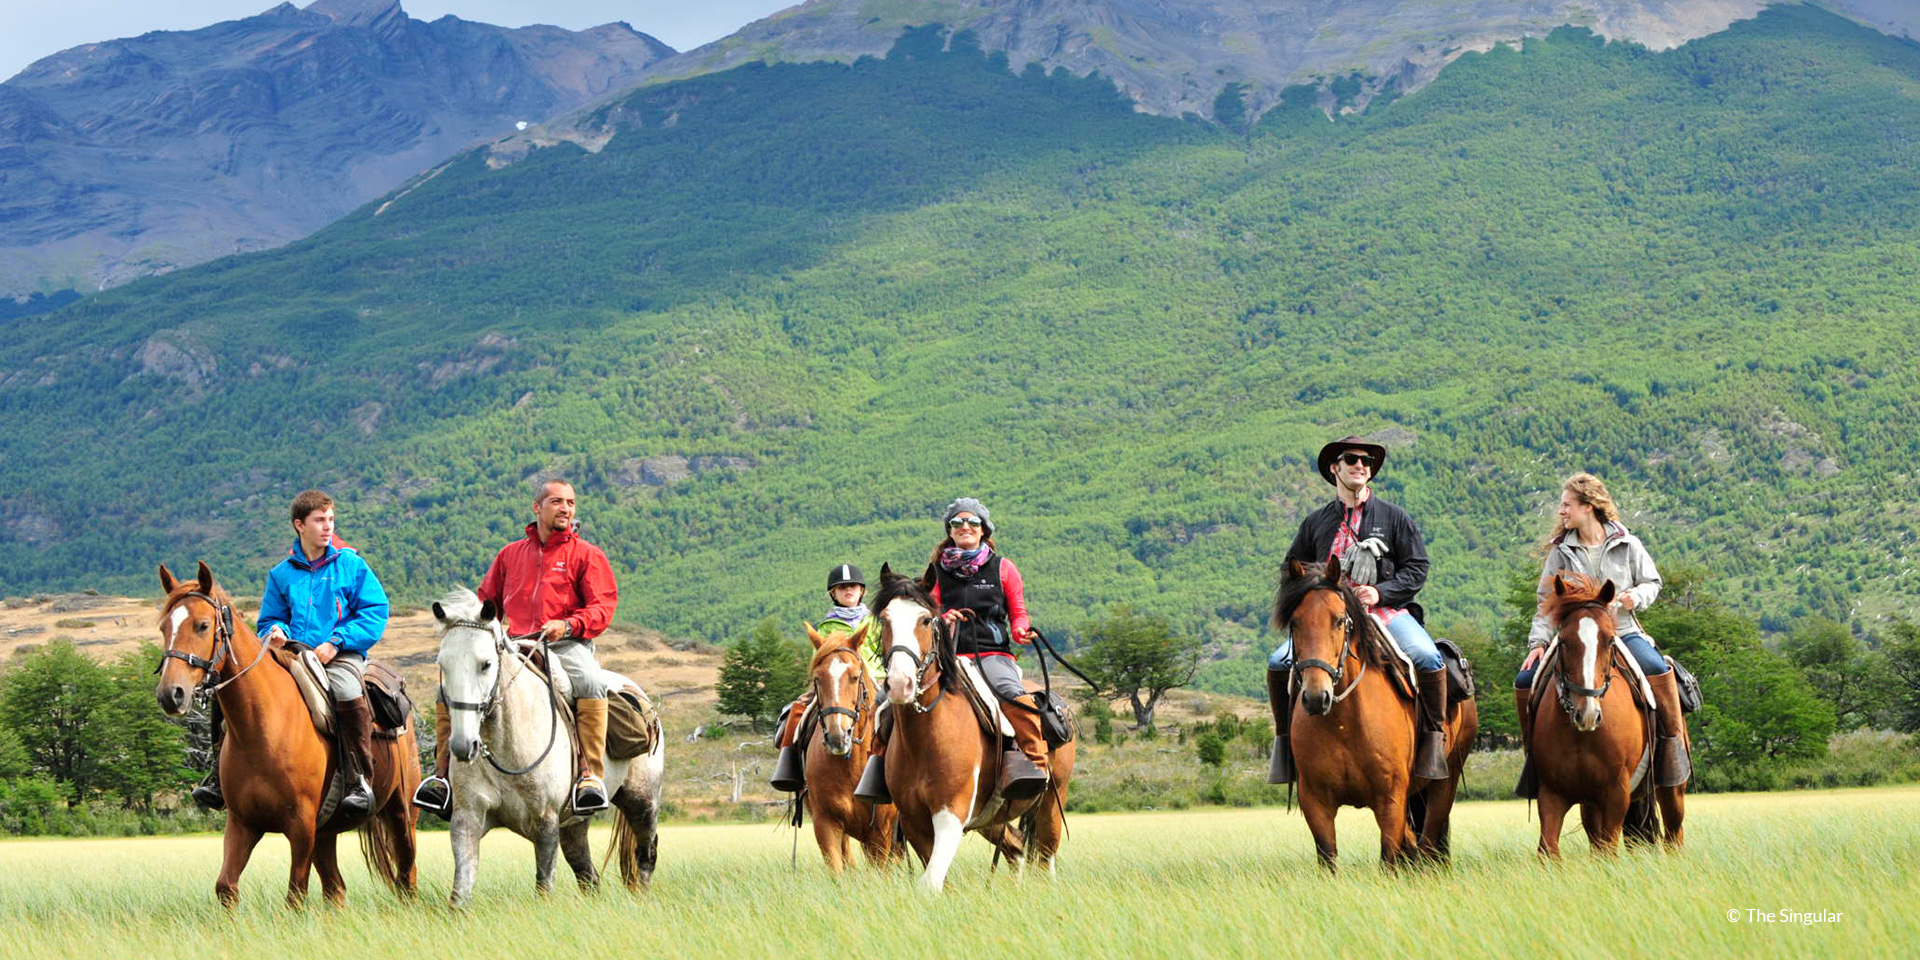 patagonia-horse-back-riding-chile